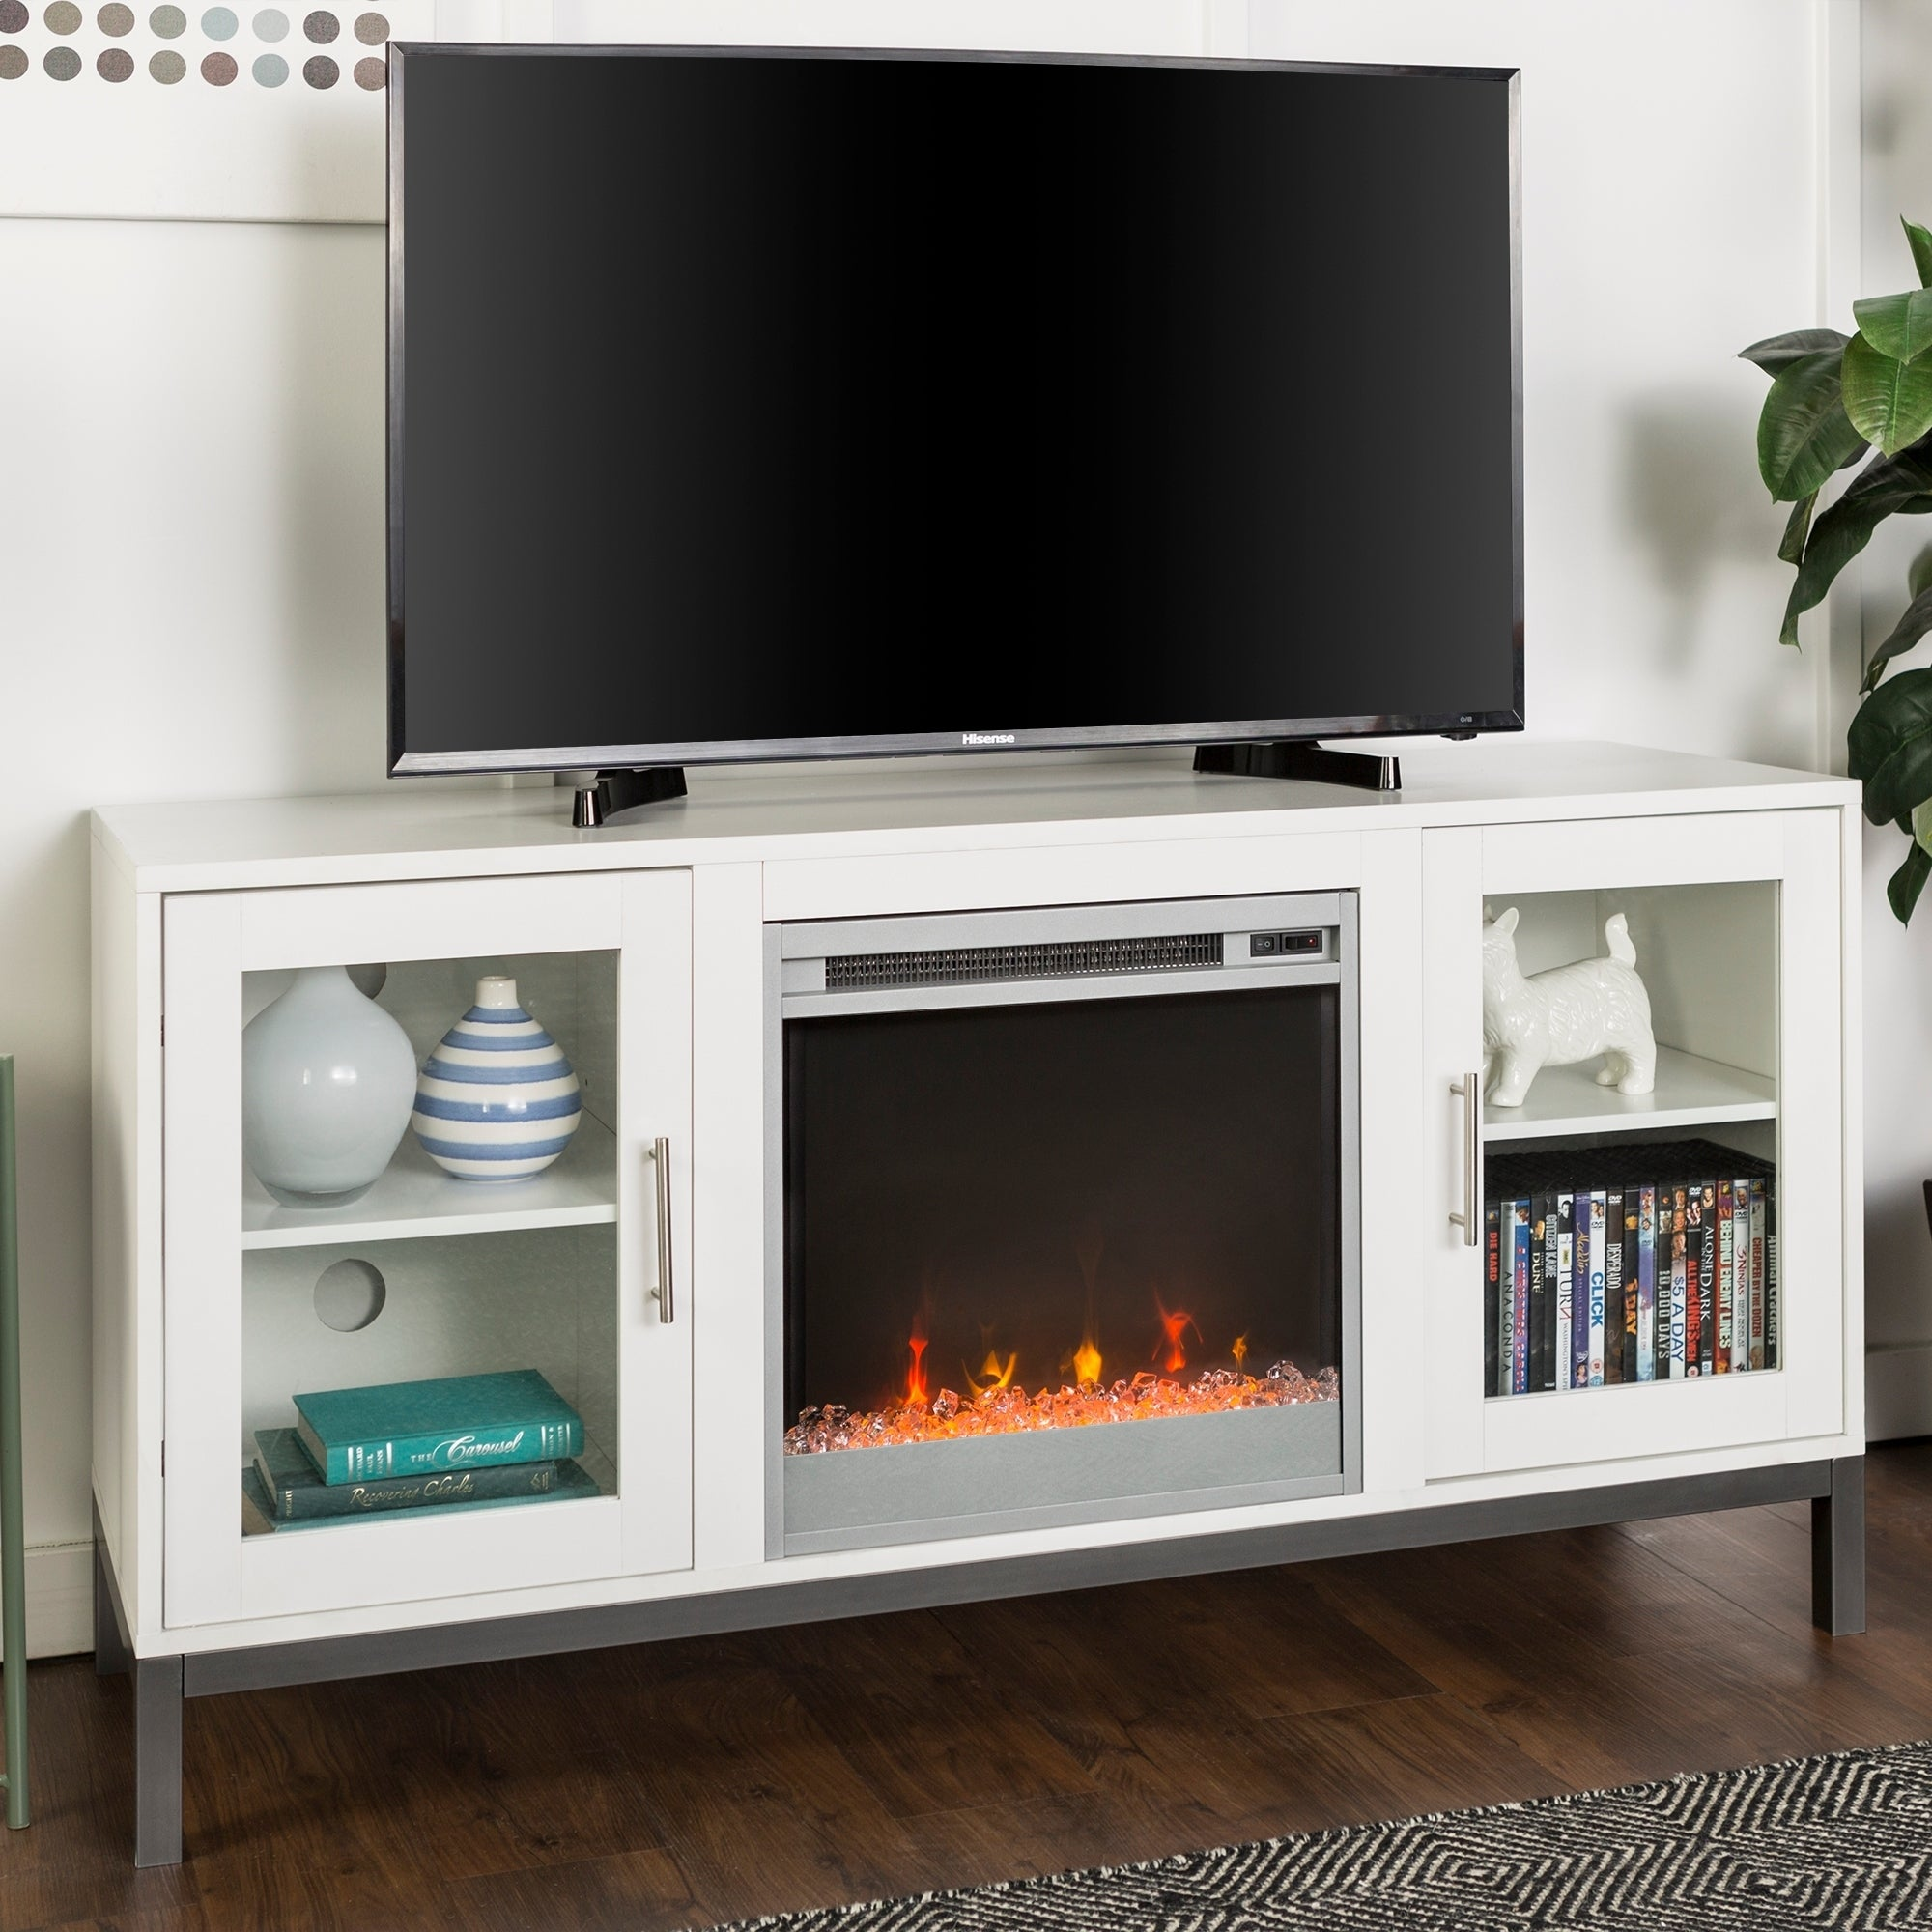 Shop 52 Fireplace Tv Stand Console With Metal Base 52 X 16 X 26h